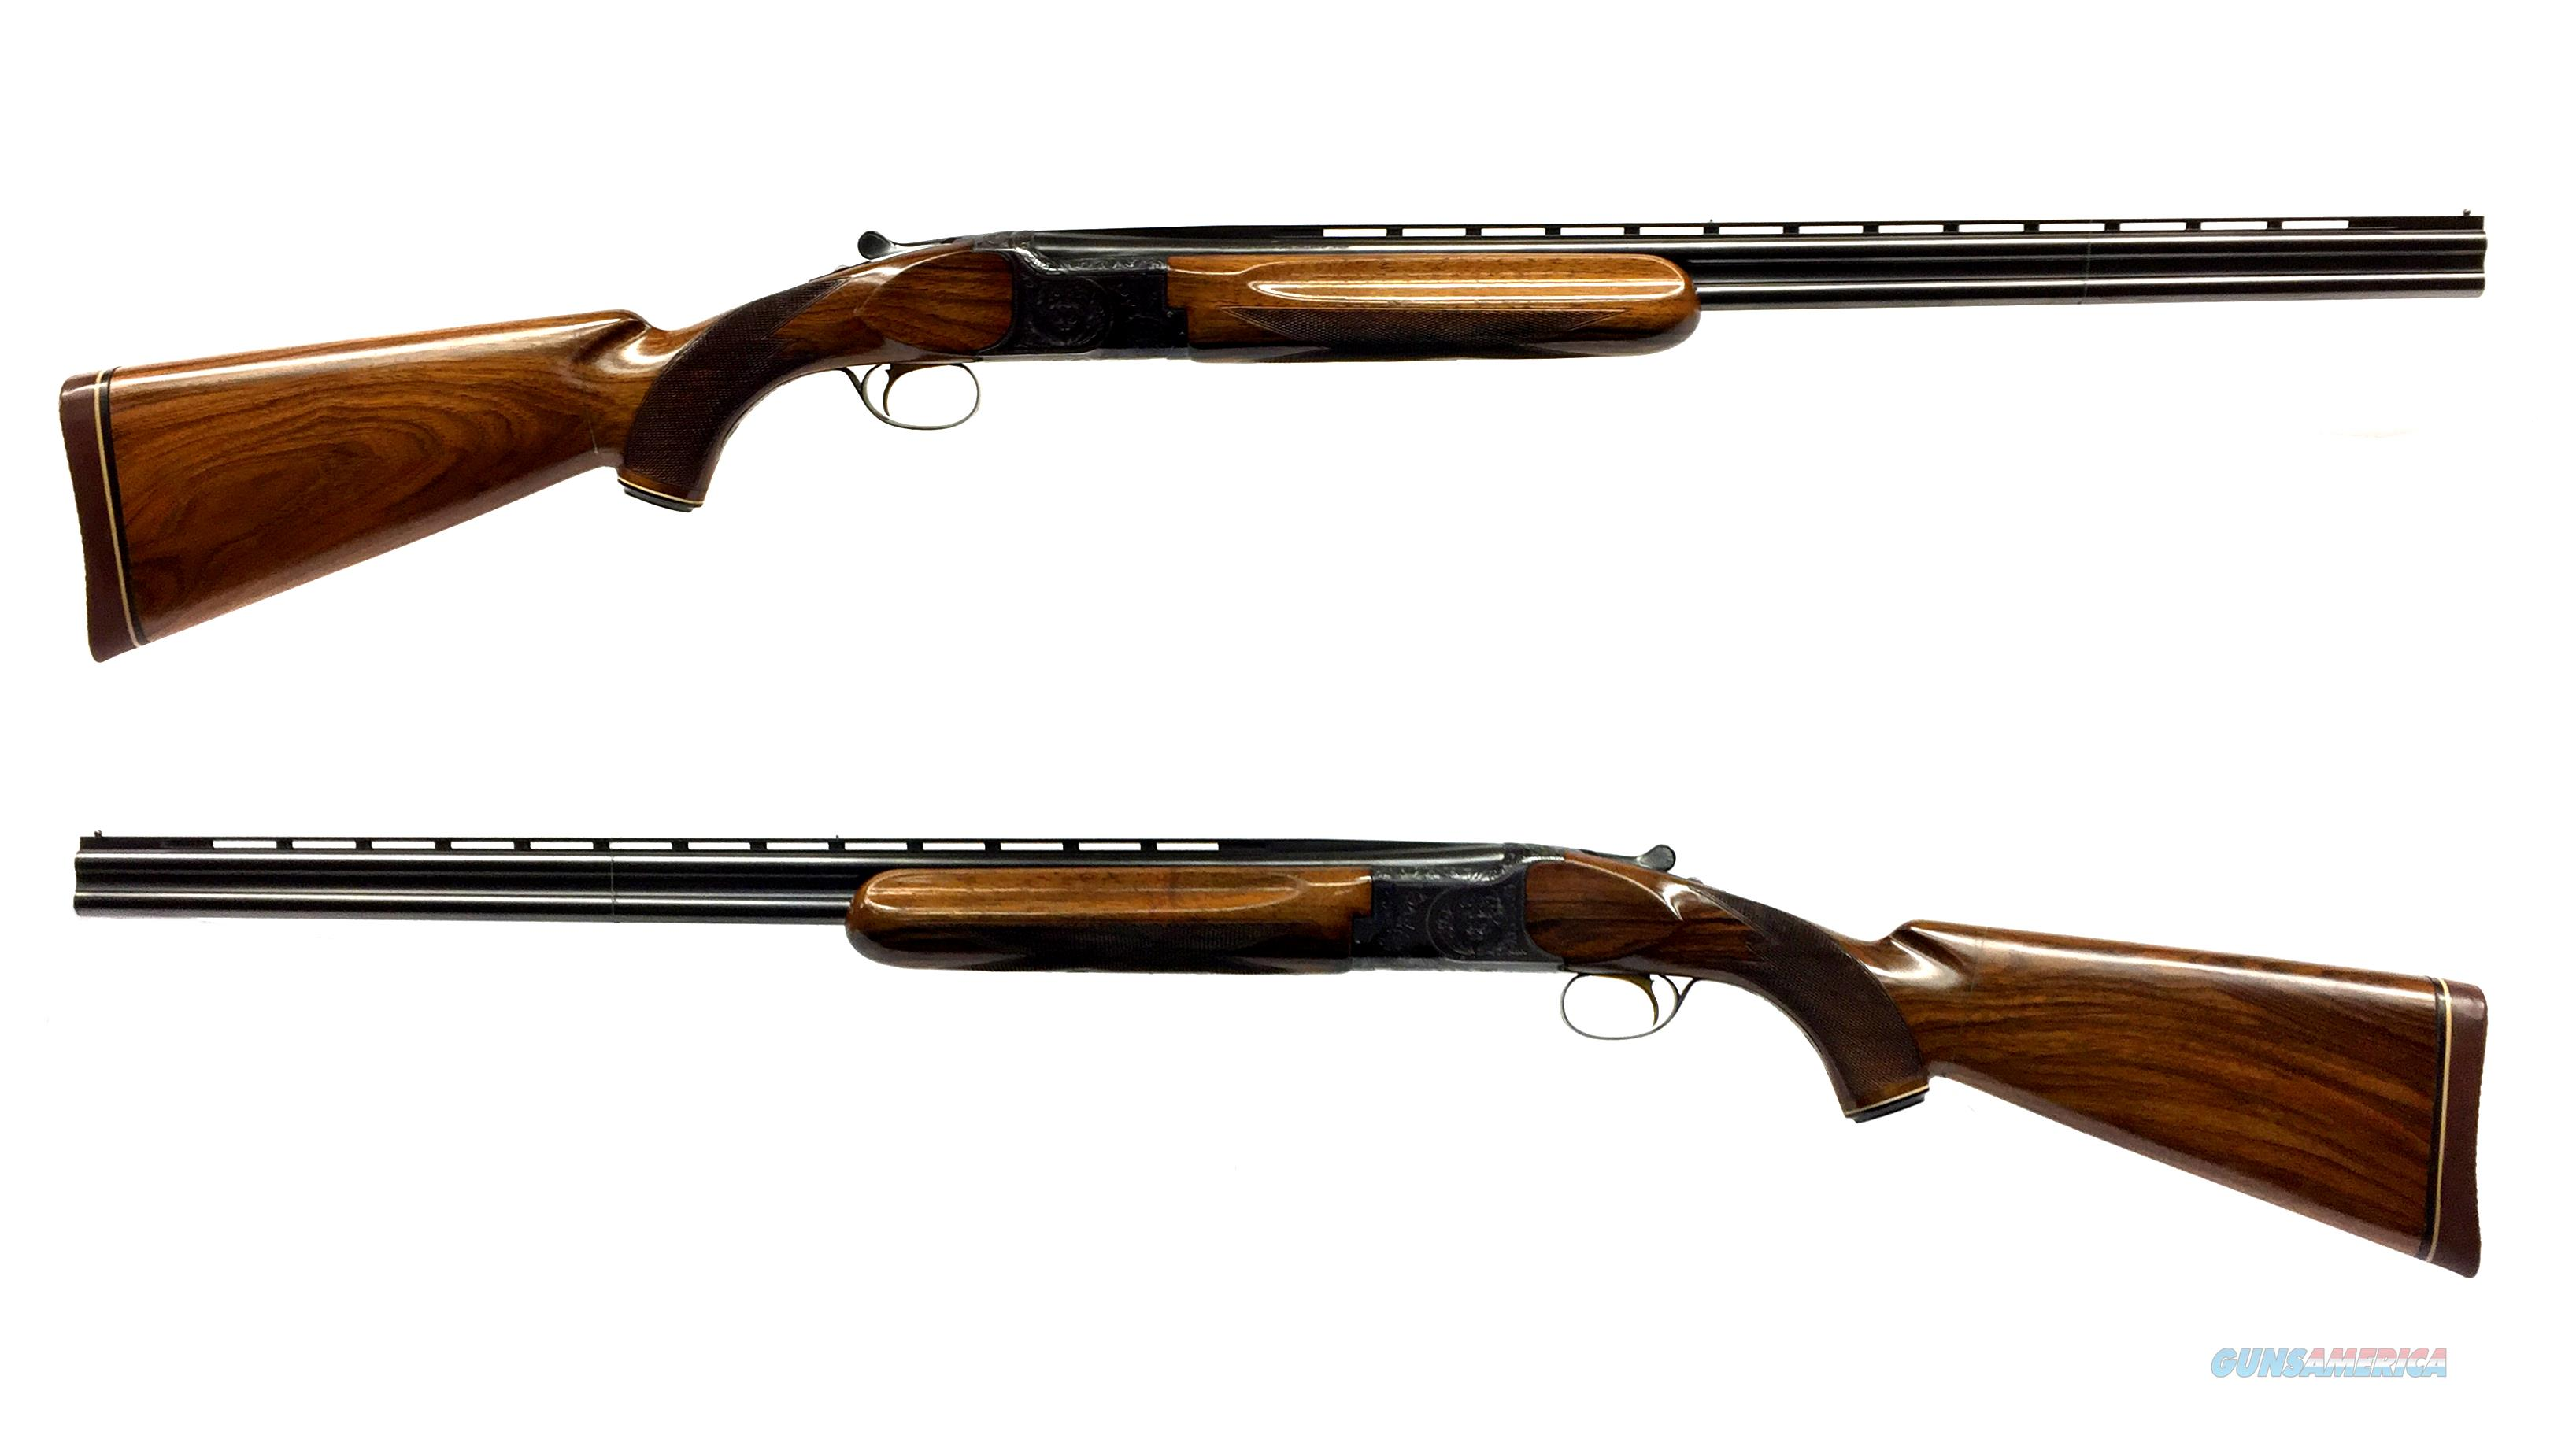 Charles Daly Miroku .410 GA O/U Shotgun  Guns > Shotguns > Charles Daly Shotguns > Over/Under